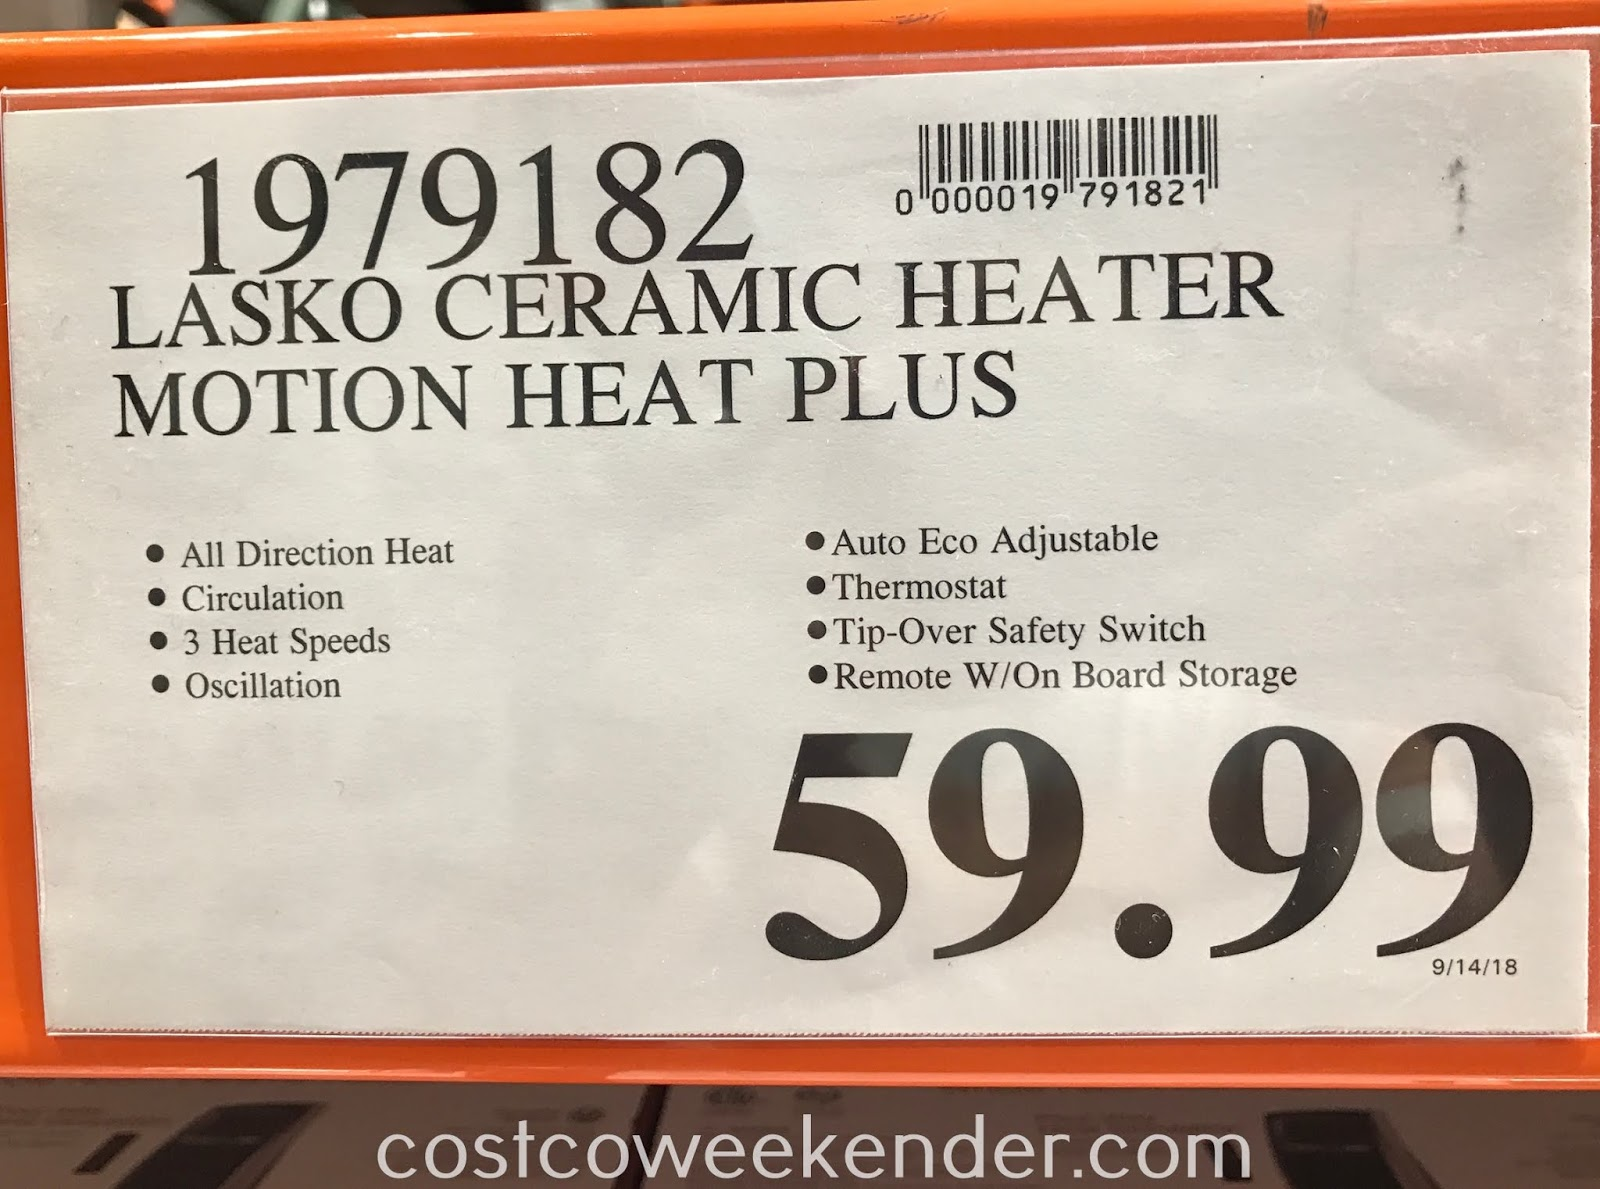 Deal for the Lasko Whole Room Ceramic Heater at Costco